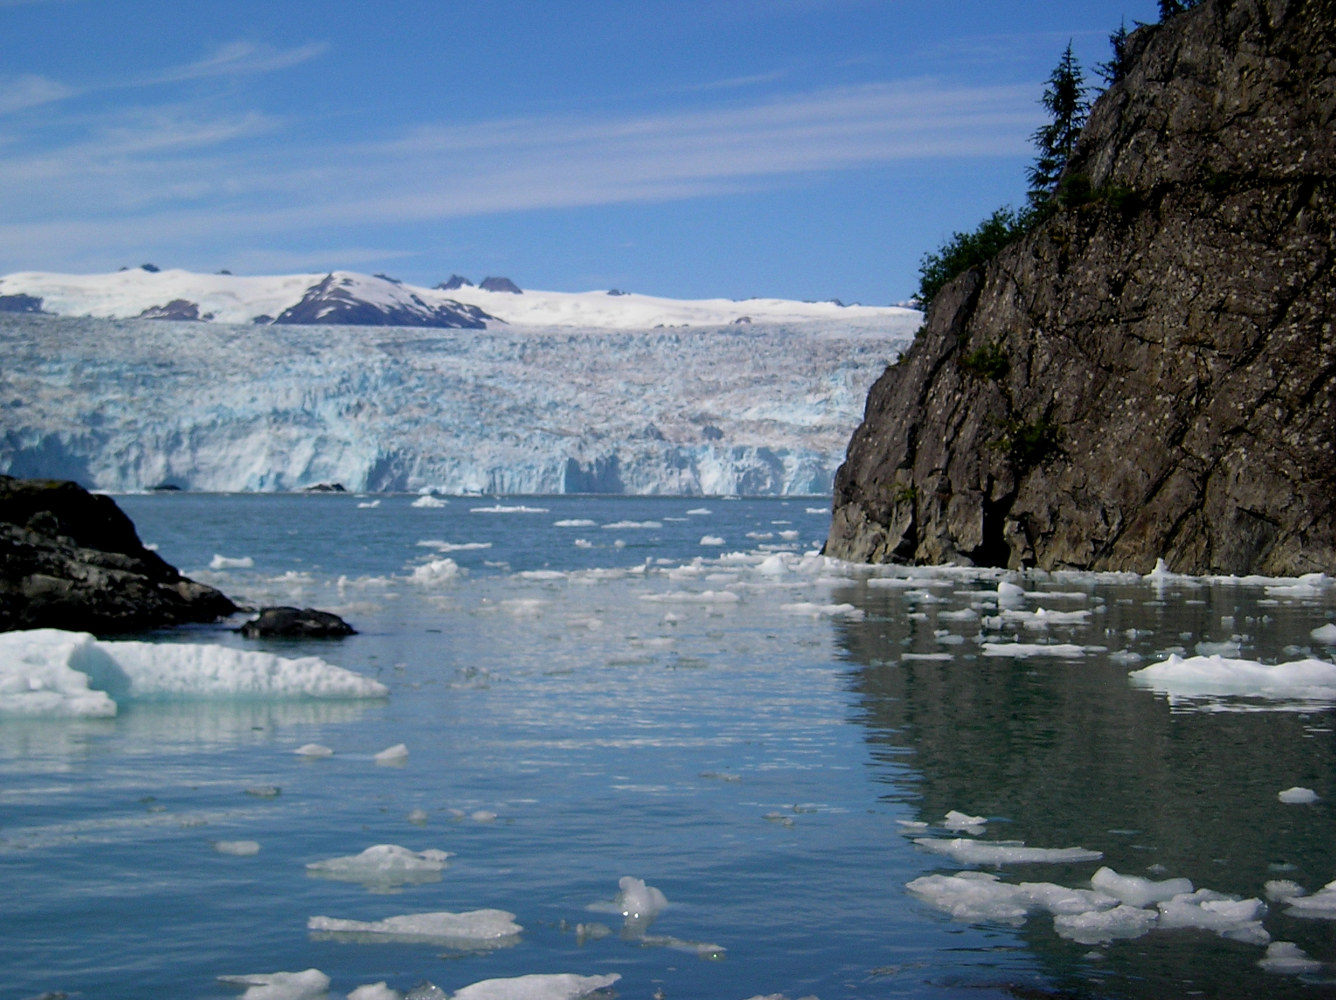 Chenega Glacier and iceburgy water by Victoria Avila